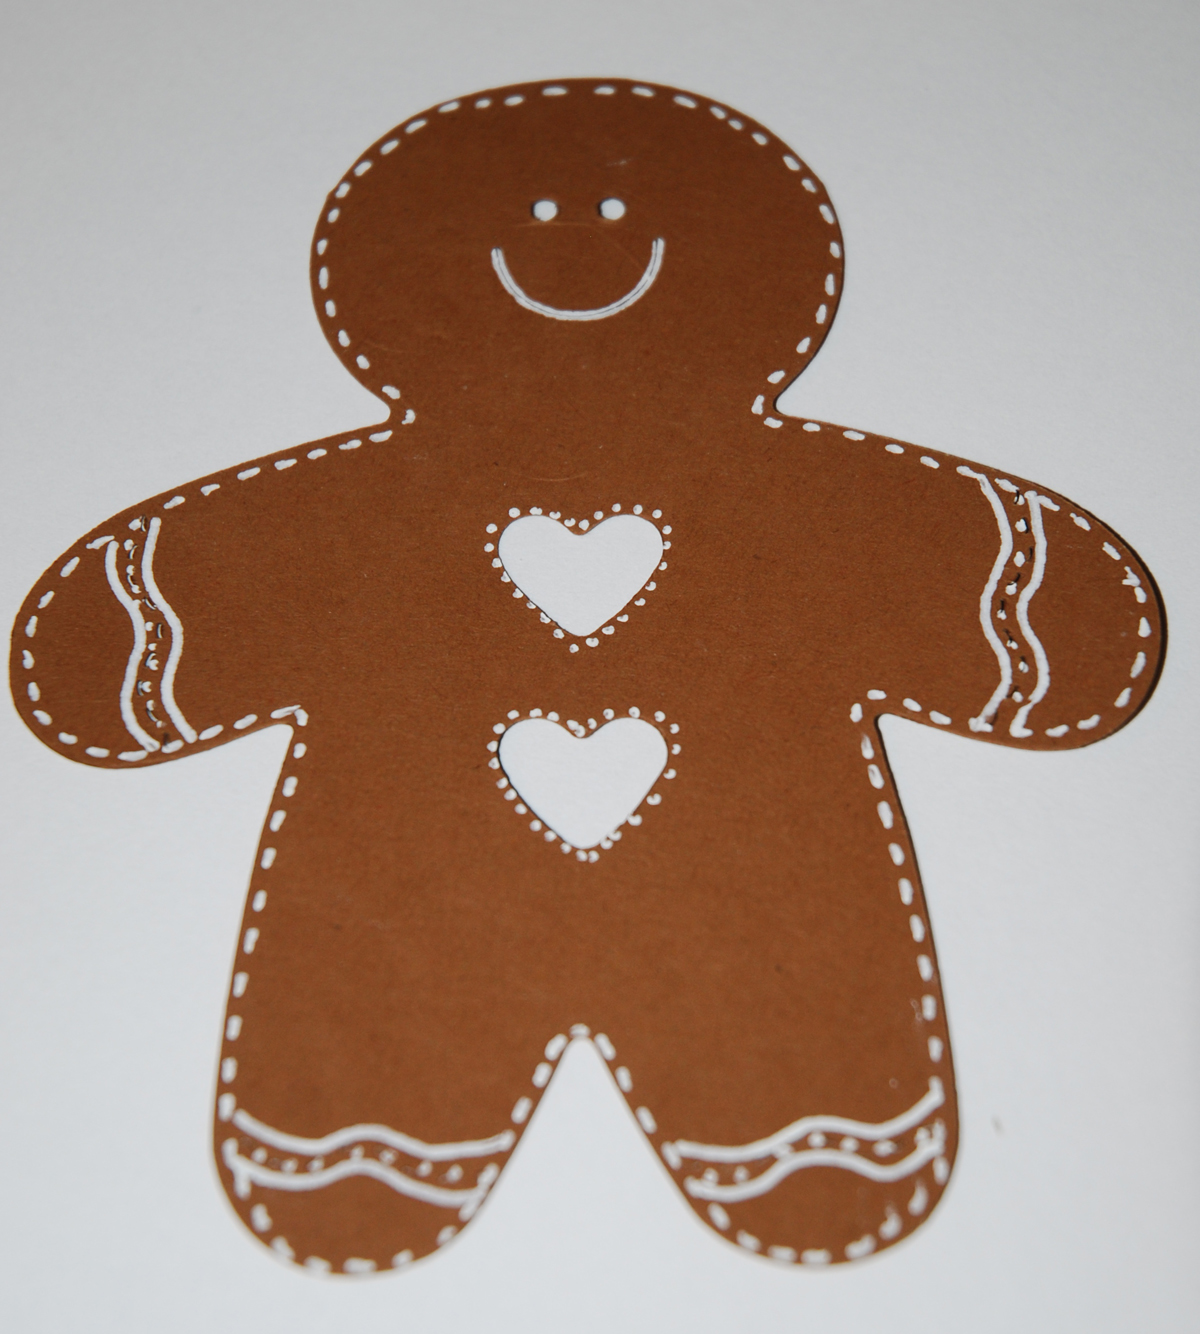 Gingerbread Man Outline Embellish the gingerbread man